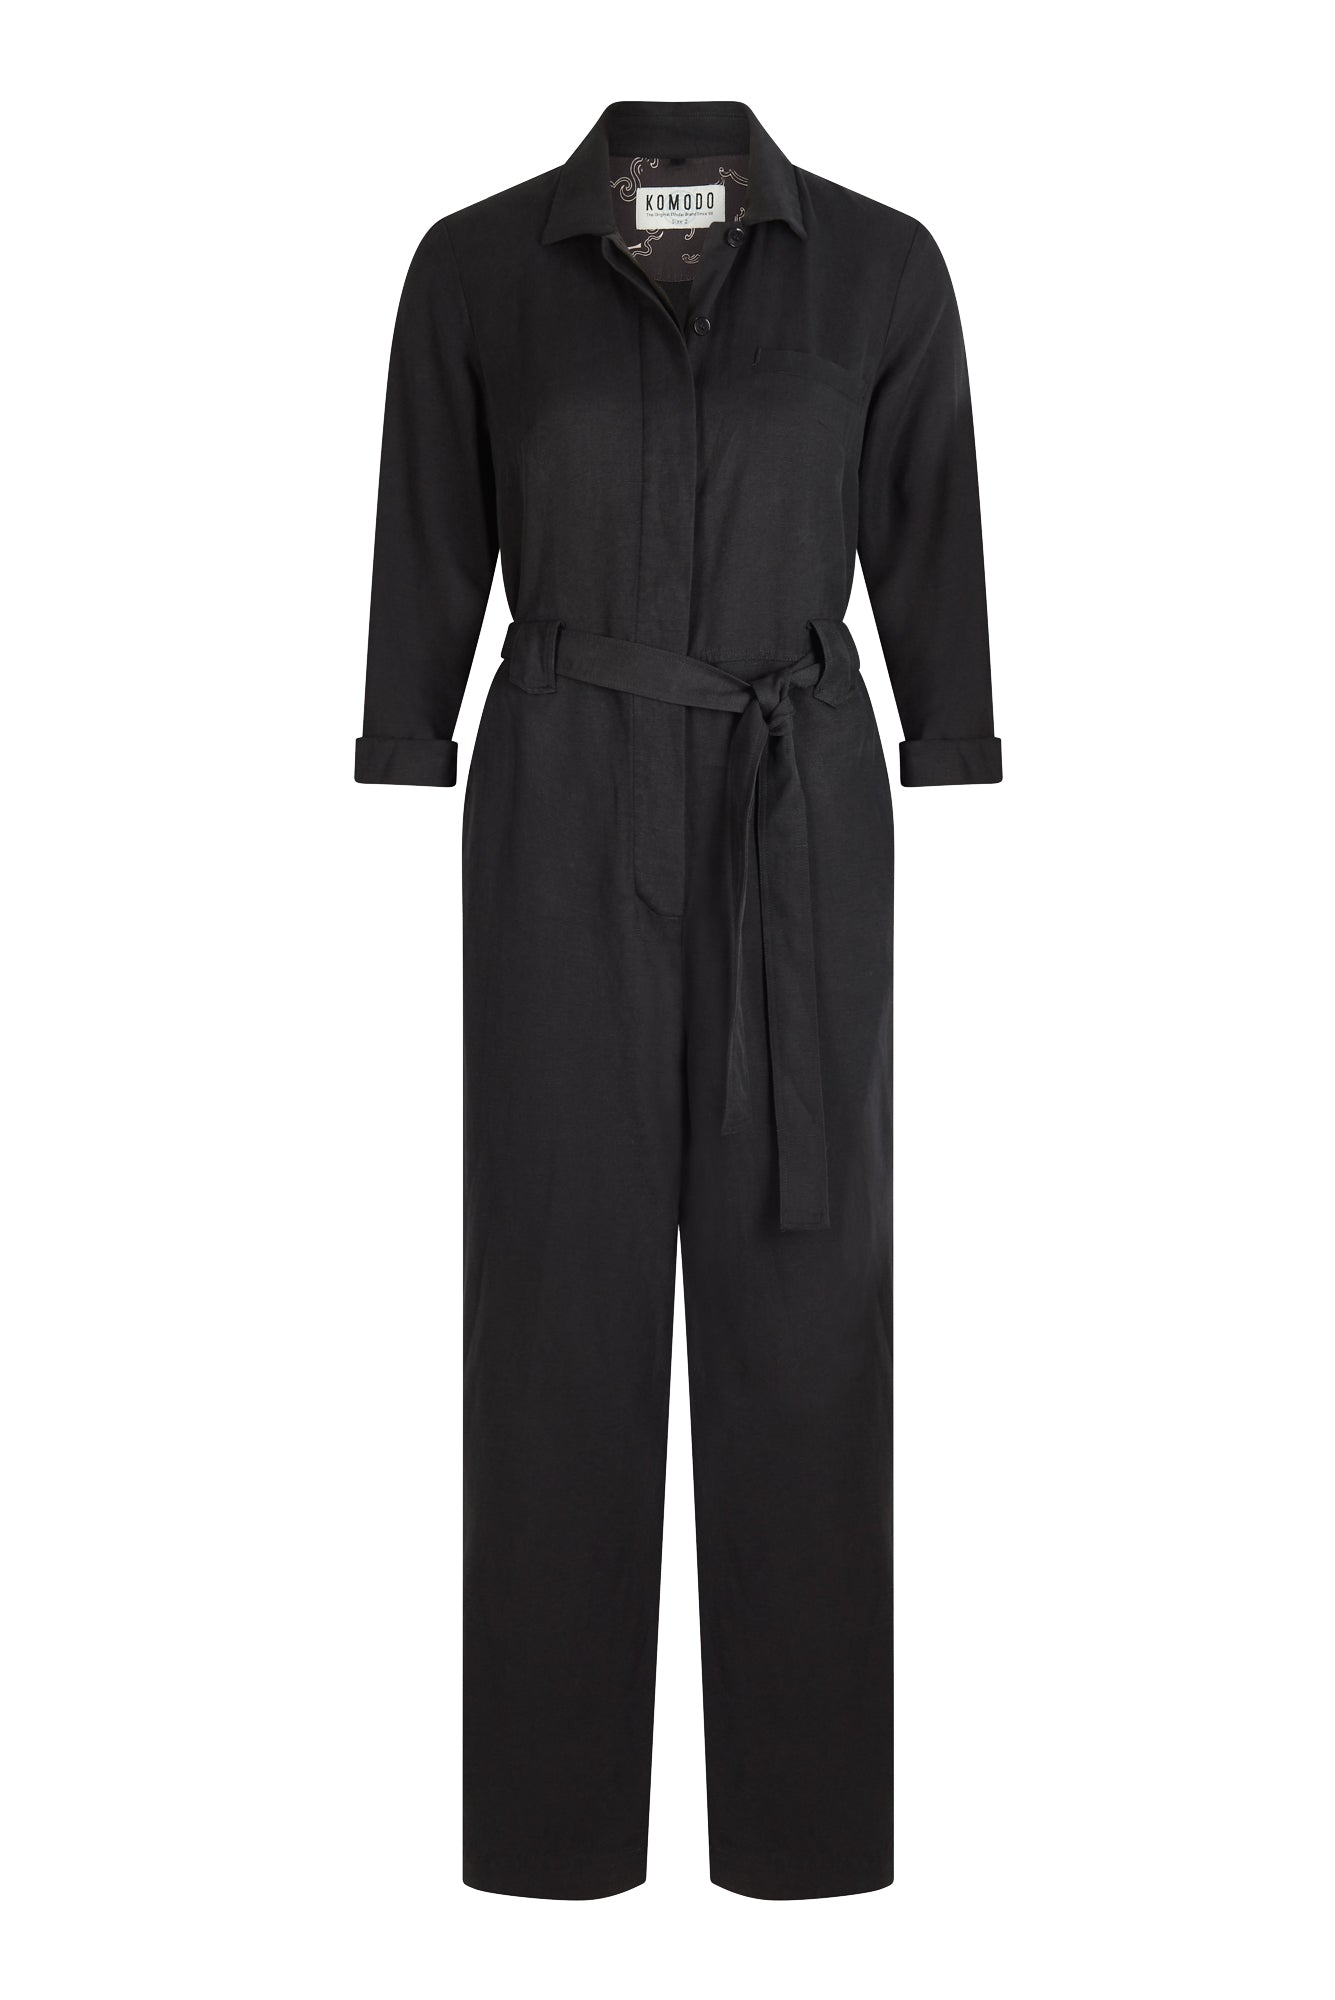 SHIVA Tencel Jumpsuit Coal